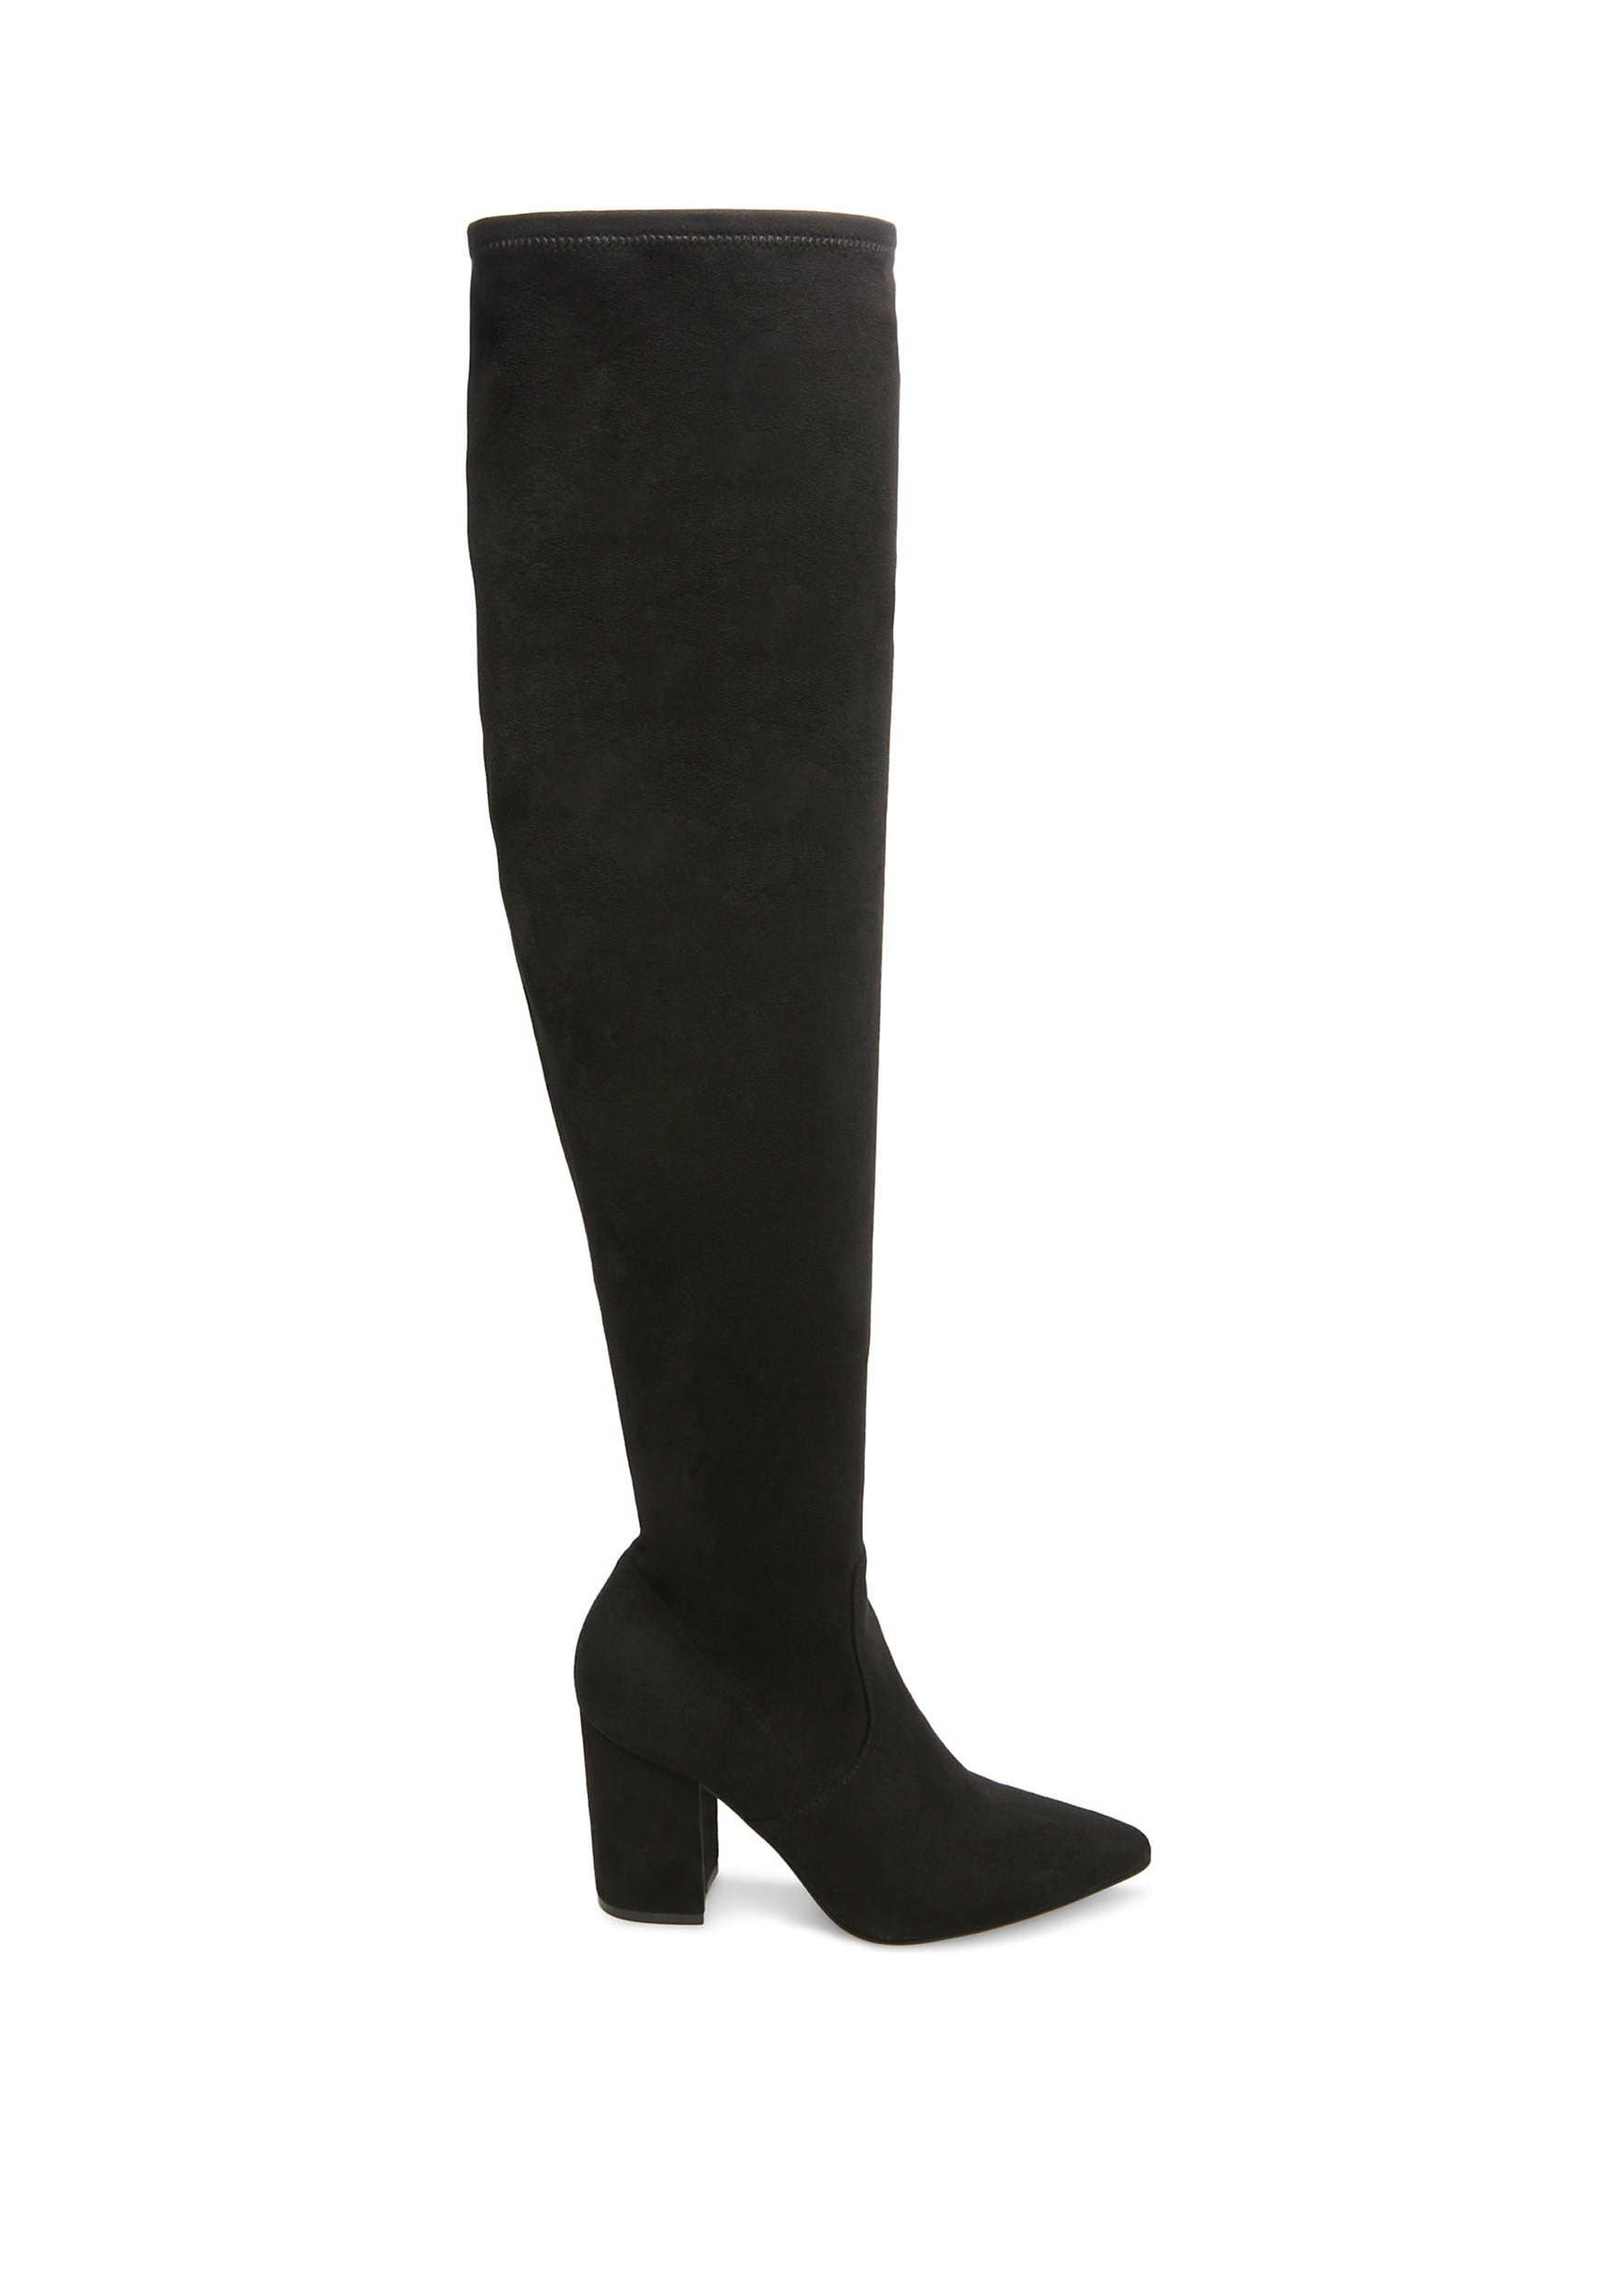 2edf914fa65 Steve Madden Rational Over The Knee Boot